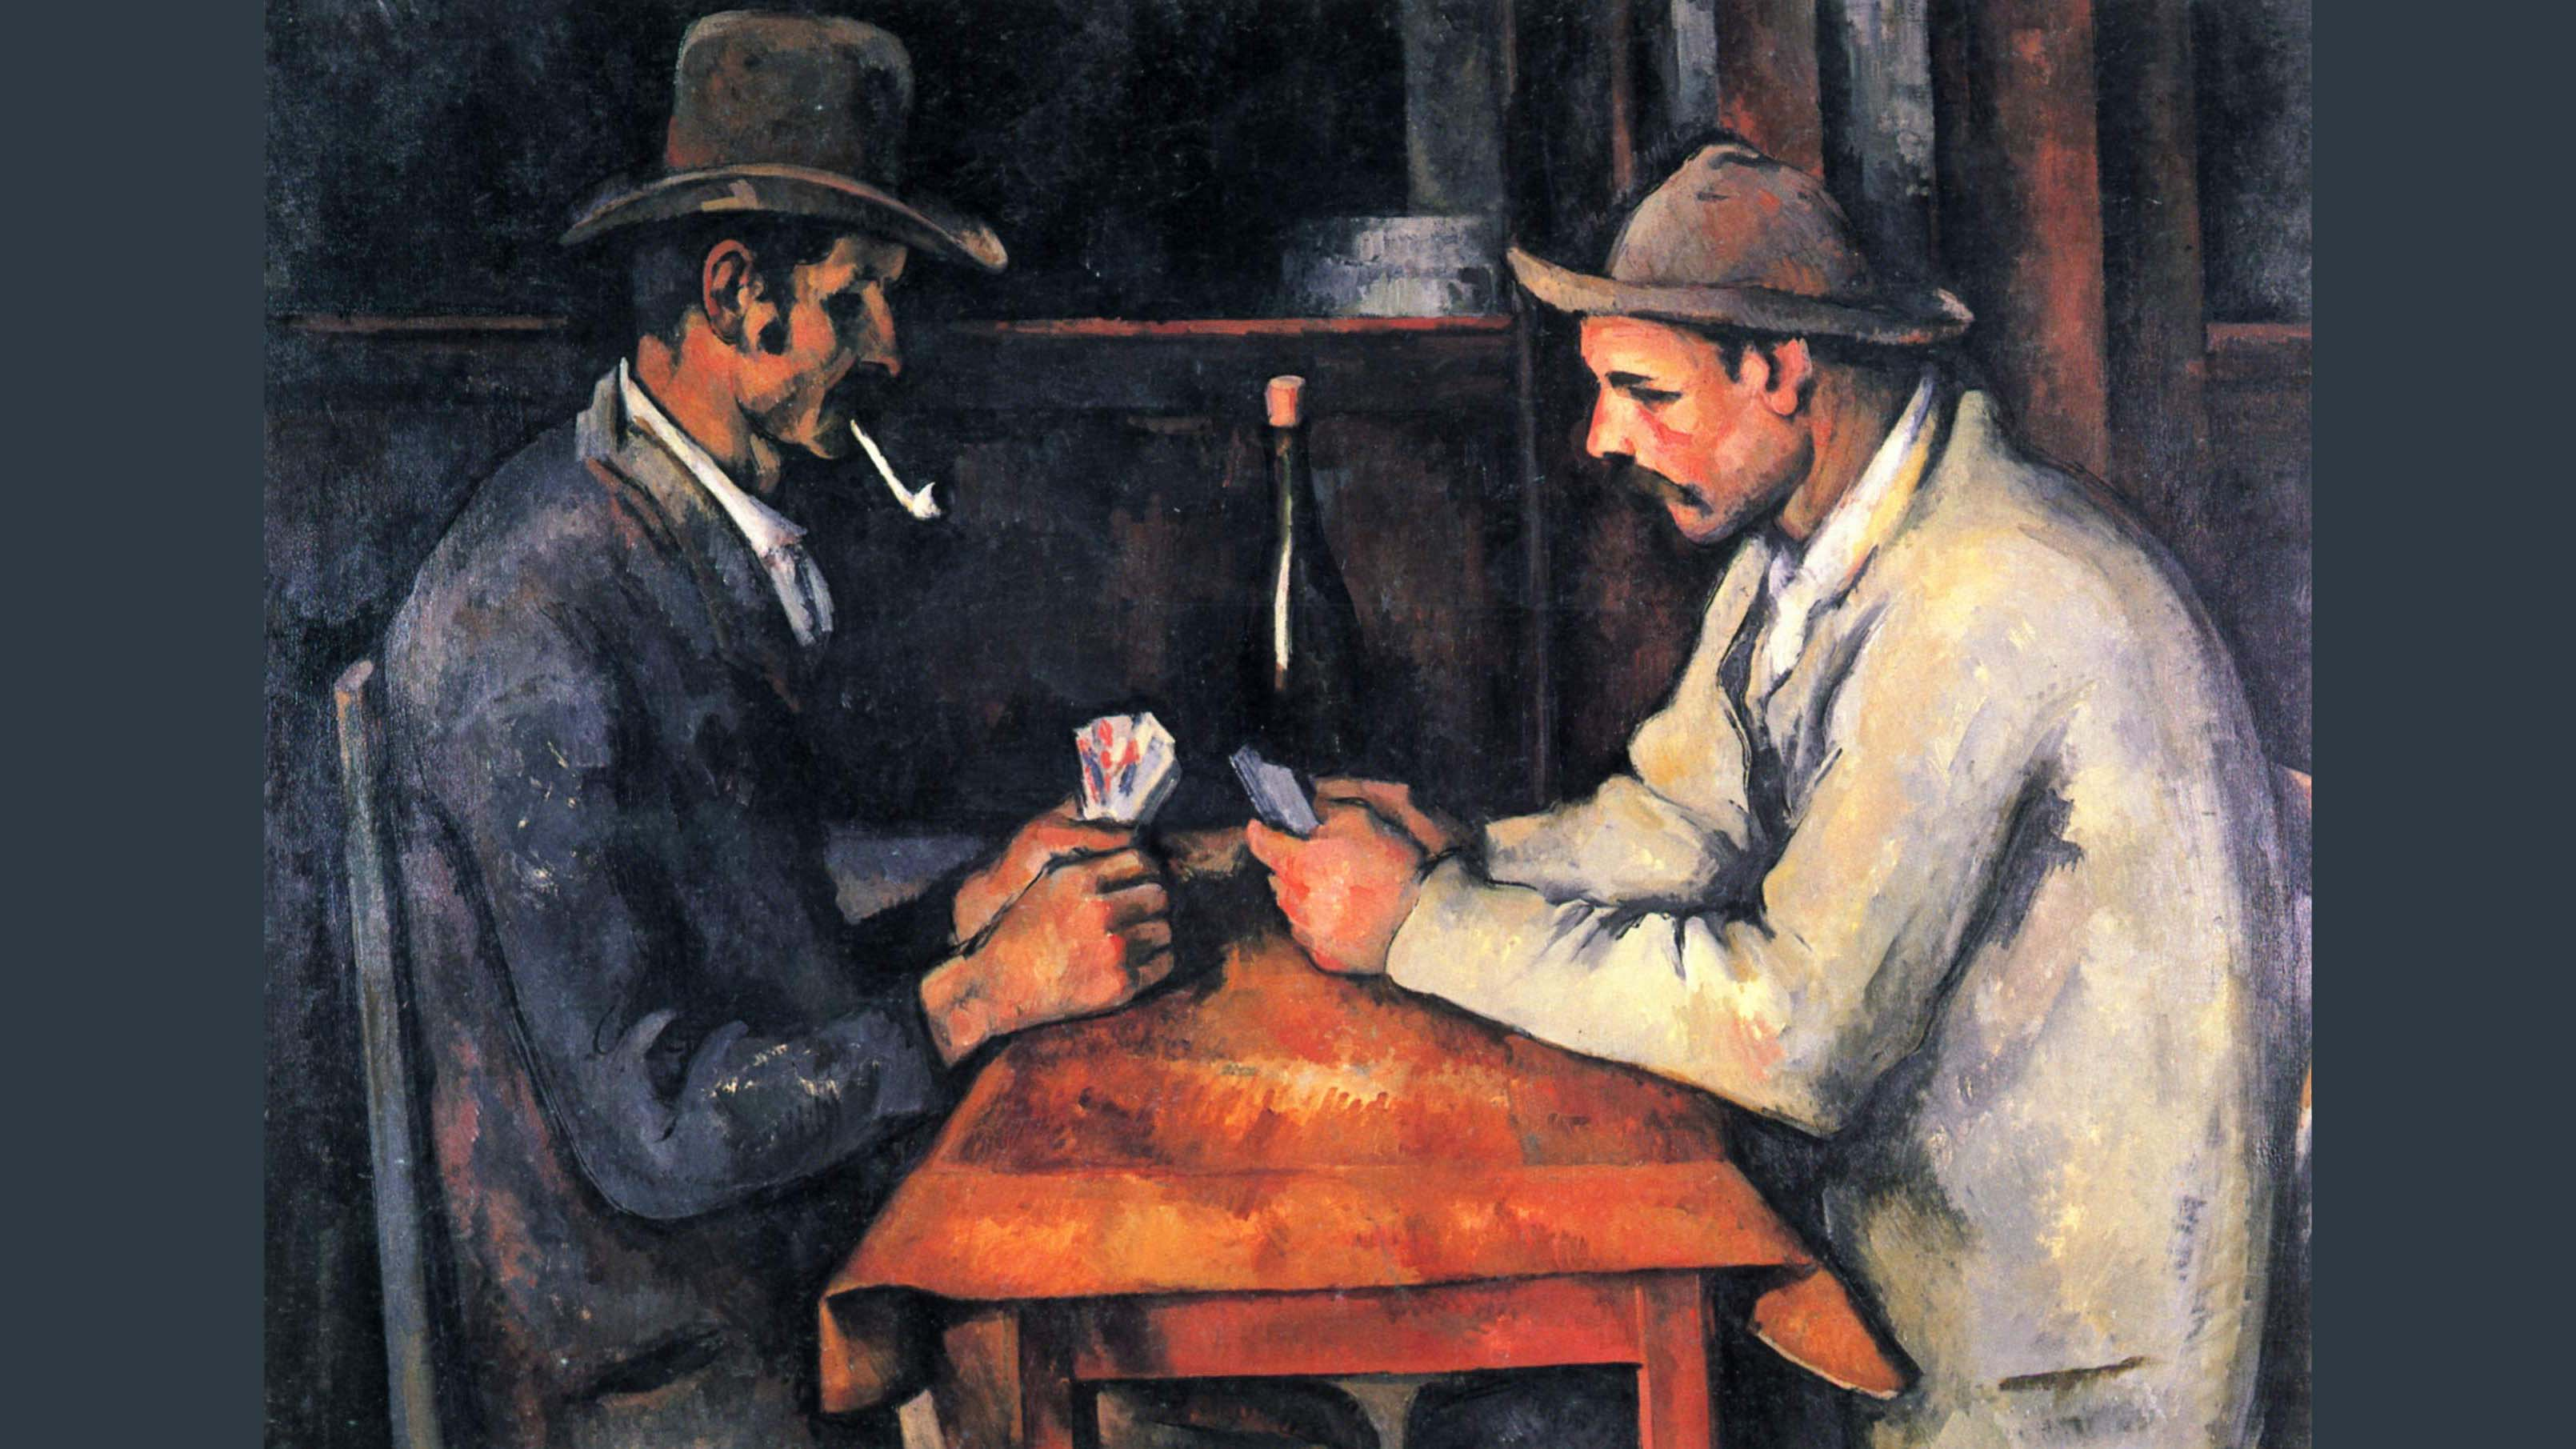 duurste_schilderijen_paul_cezanne_the_card_players.jpg